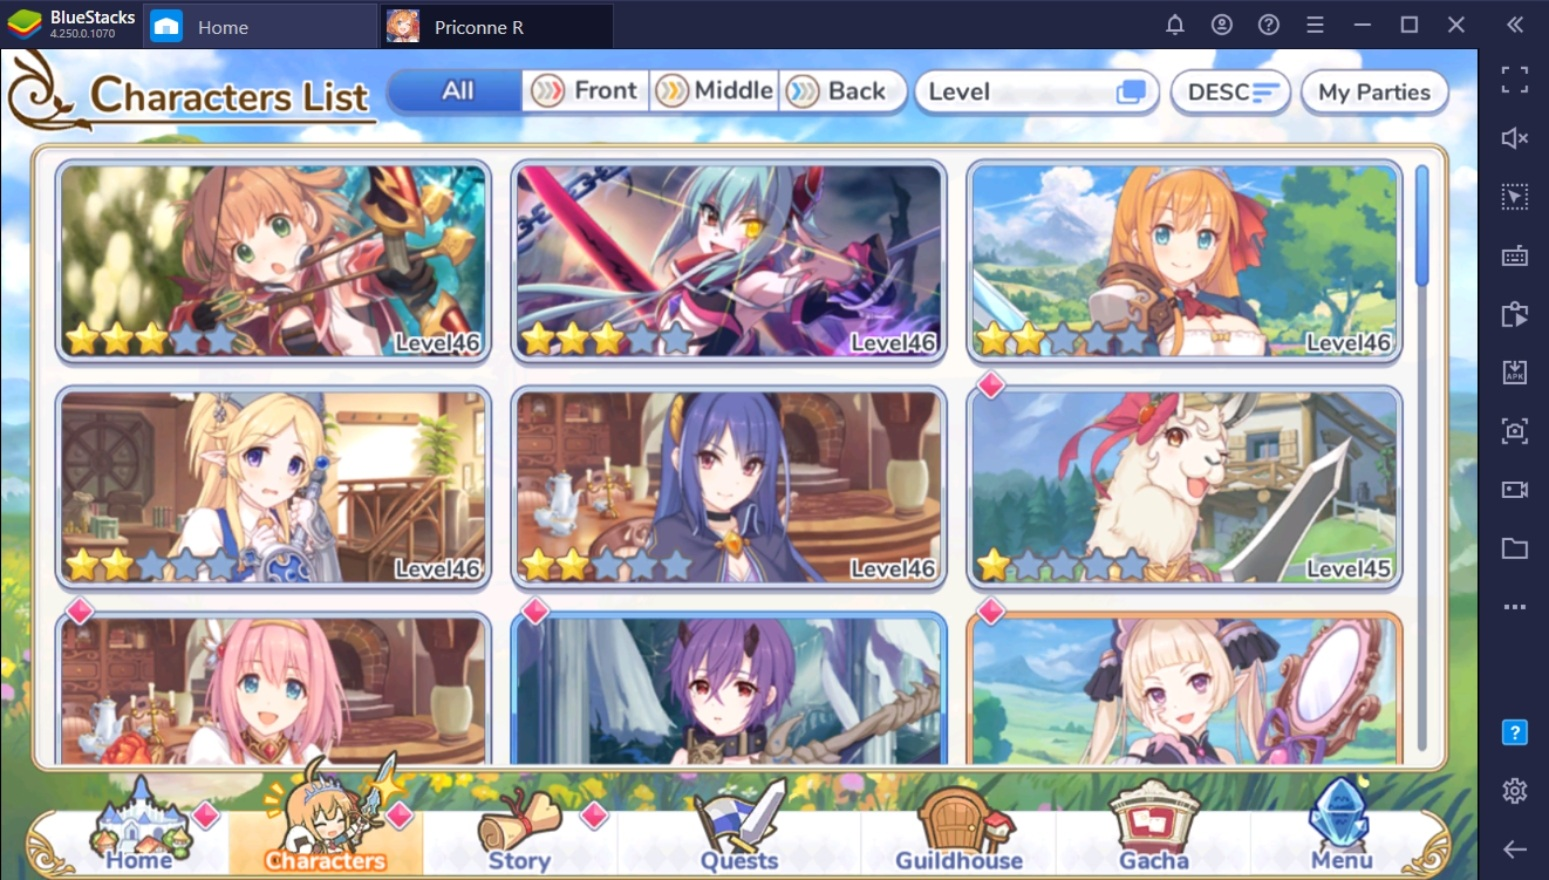 Fastest Way To Catch Up in Princess Connect! Re:Dive